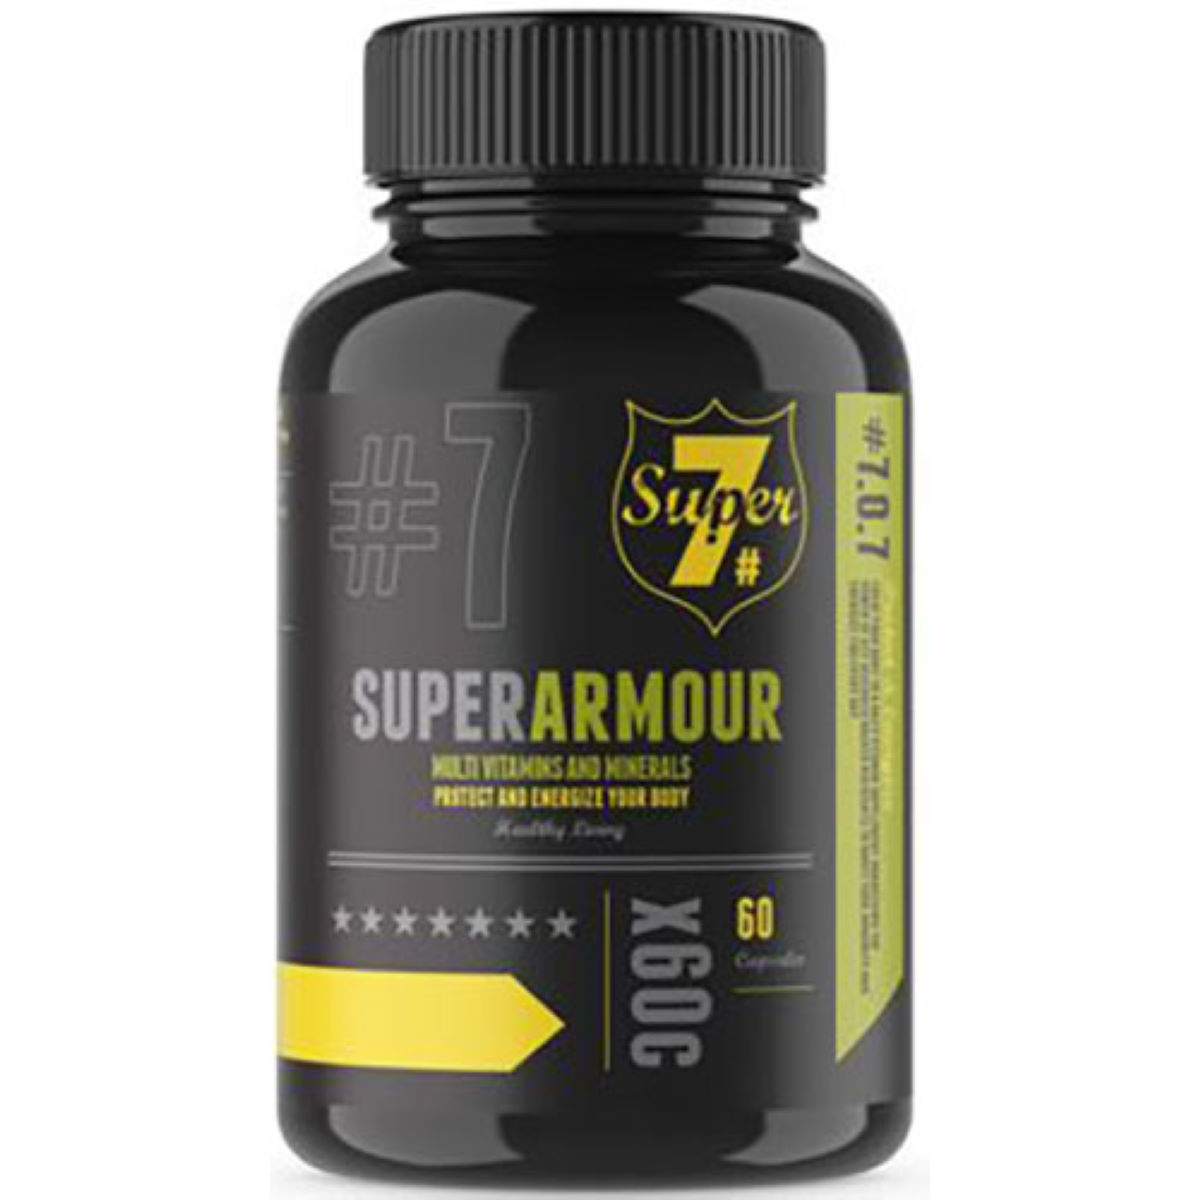 Bio-Synergy Super7 Super Armour Multivitamin - Multivitaminas